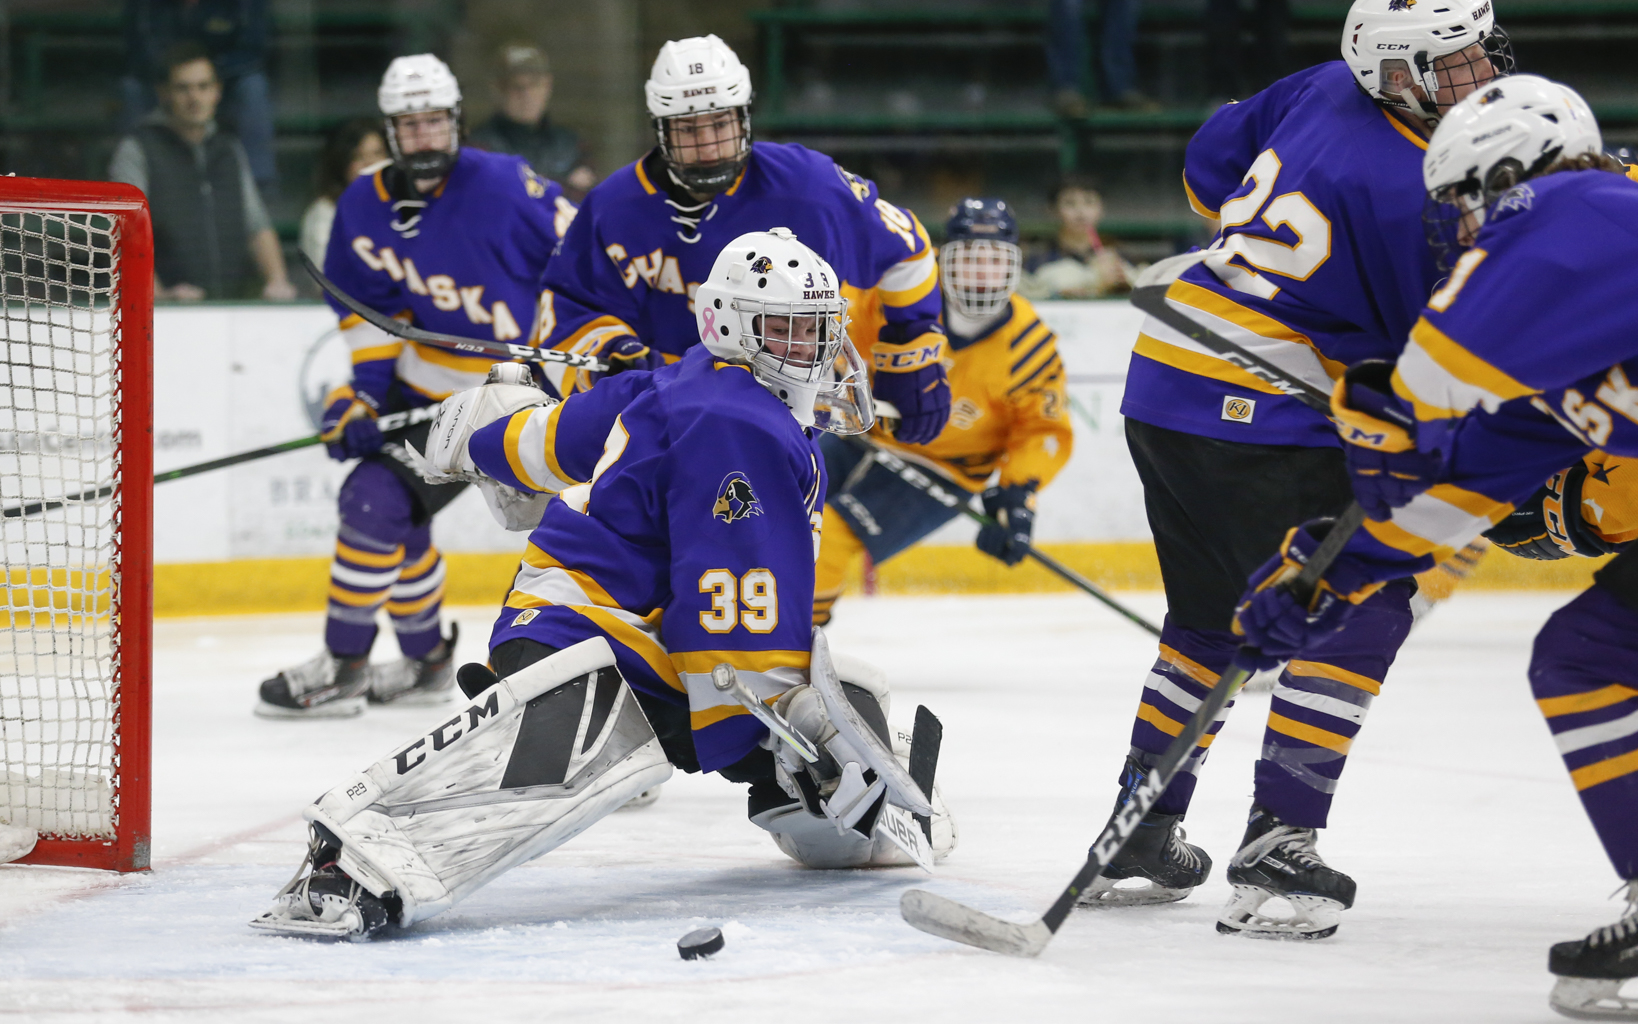 Chaska goalie Carter Wishart (39) lunges toward a loose puck as it slides across the crease during Saturday afternoon's game against Prior Lake. Wishart had 19 saves in the Hawks' 4-1 victory over the Lakers. Photo by Jeff Lawler, SportsEngine